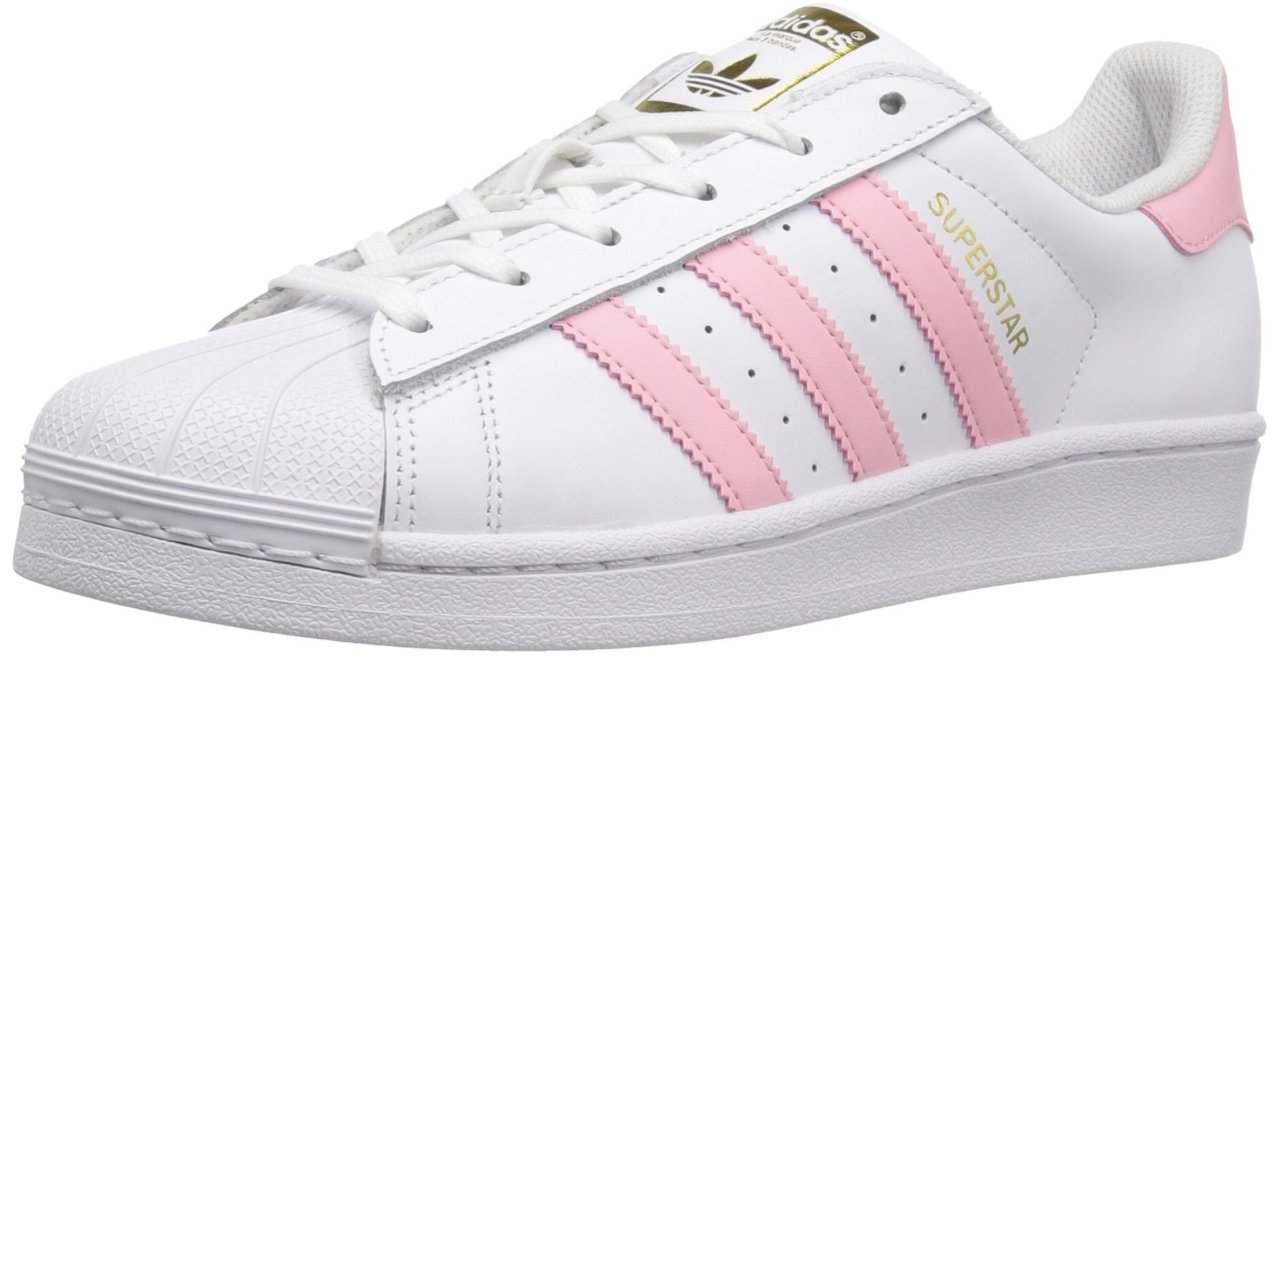 Adidas superstar shell toes in a cute baby pink color! Used - Depop d5b743e79b68